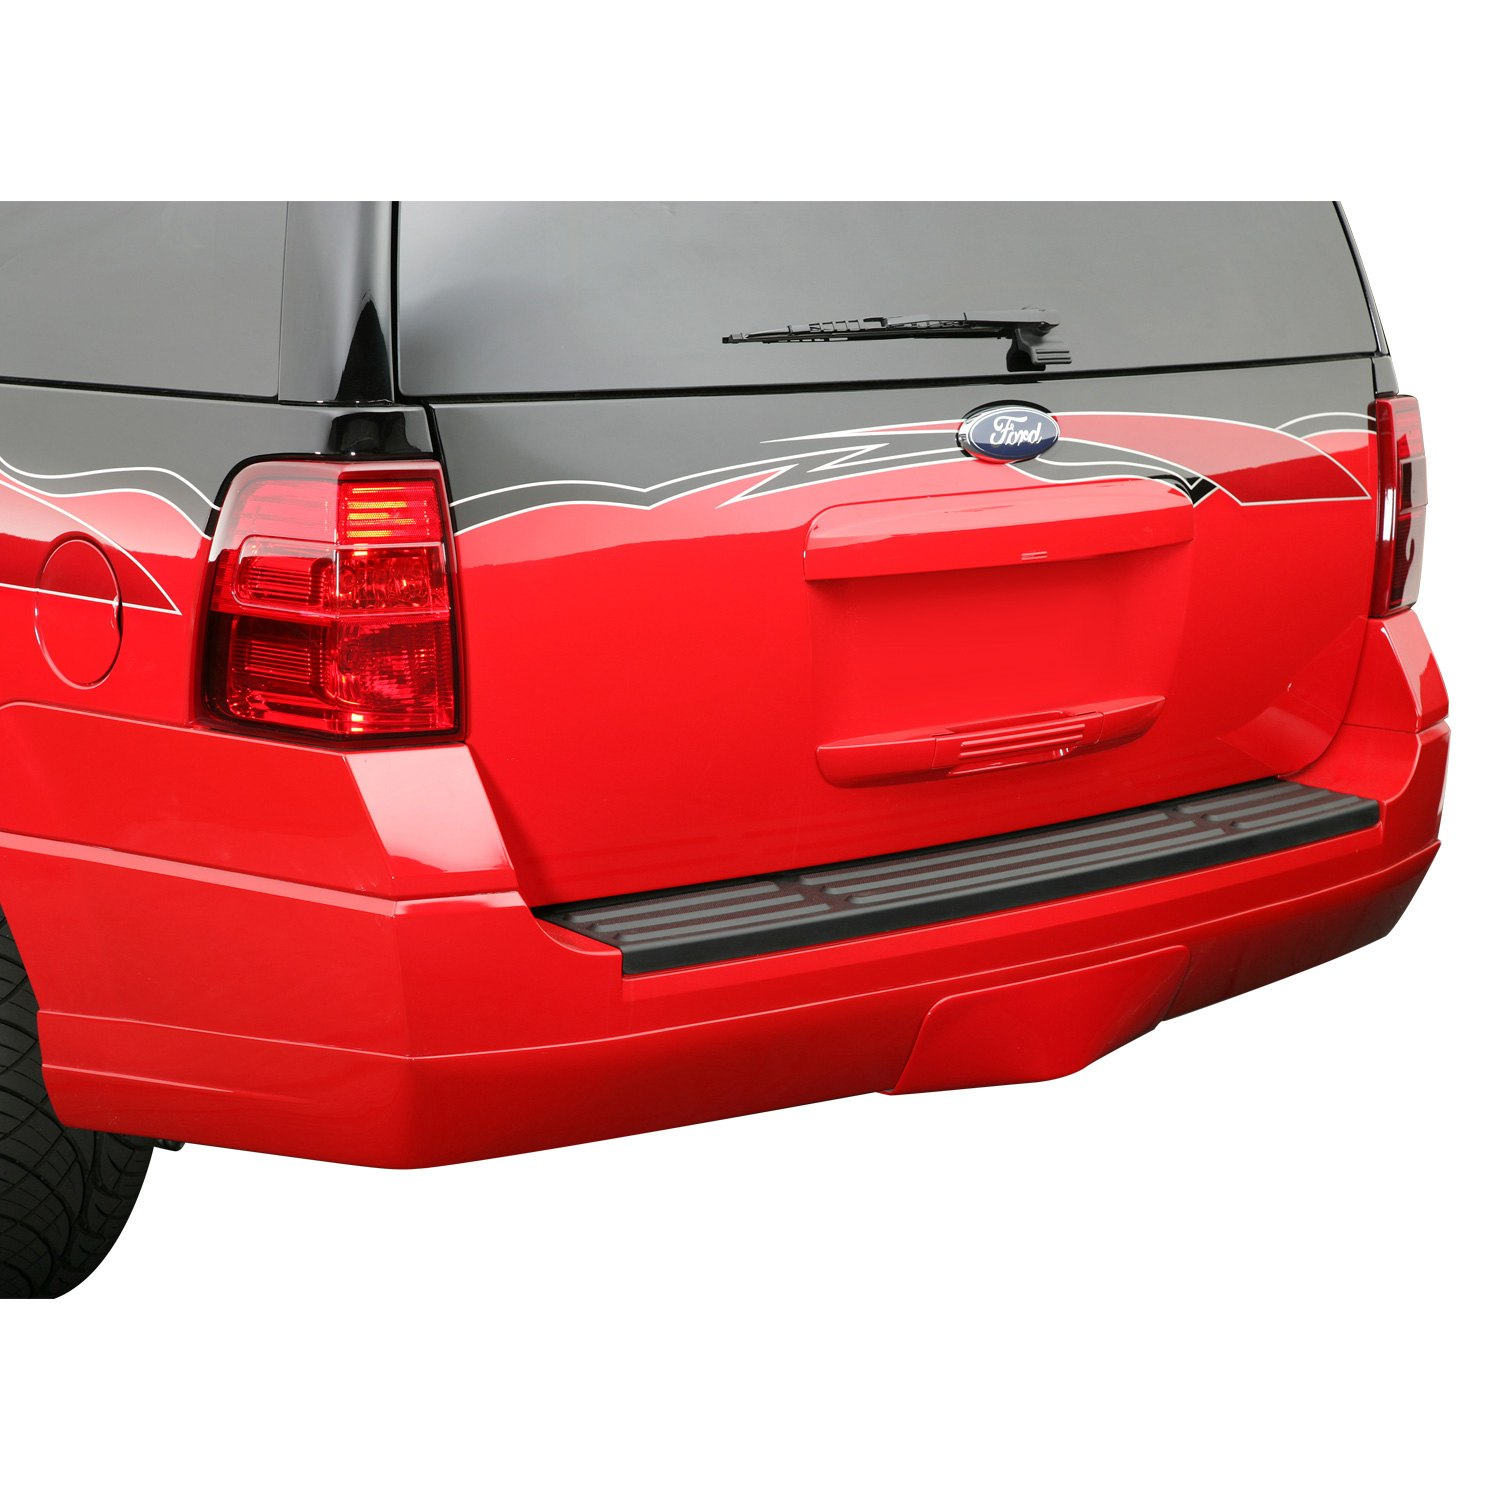 Street scene 950 70838 rear valance unpainted for Garage ford saval valence